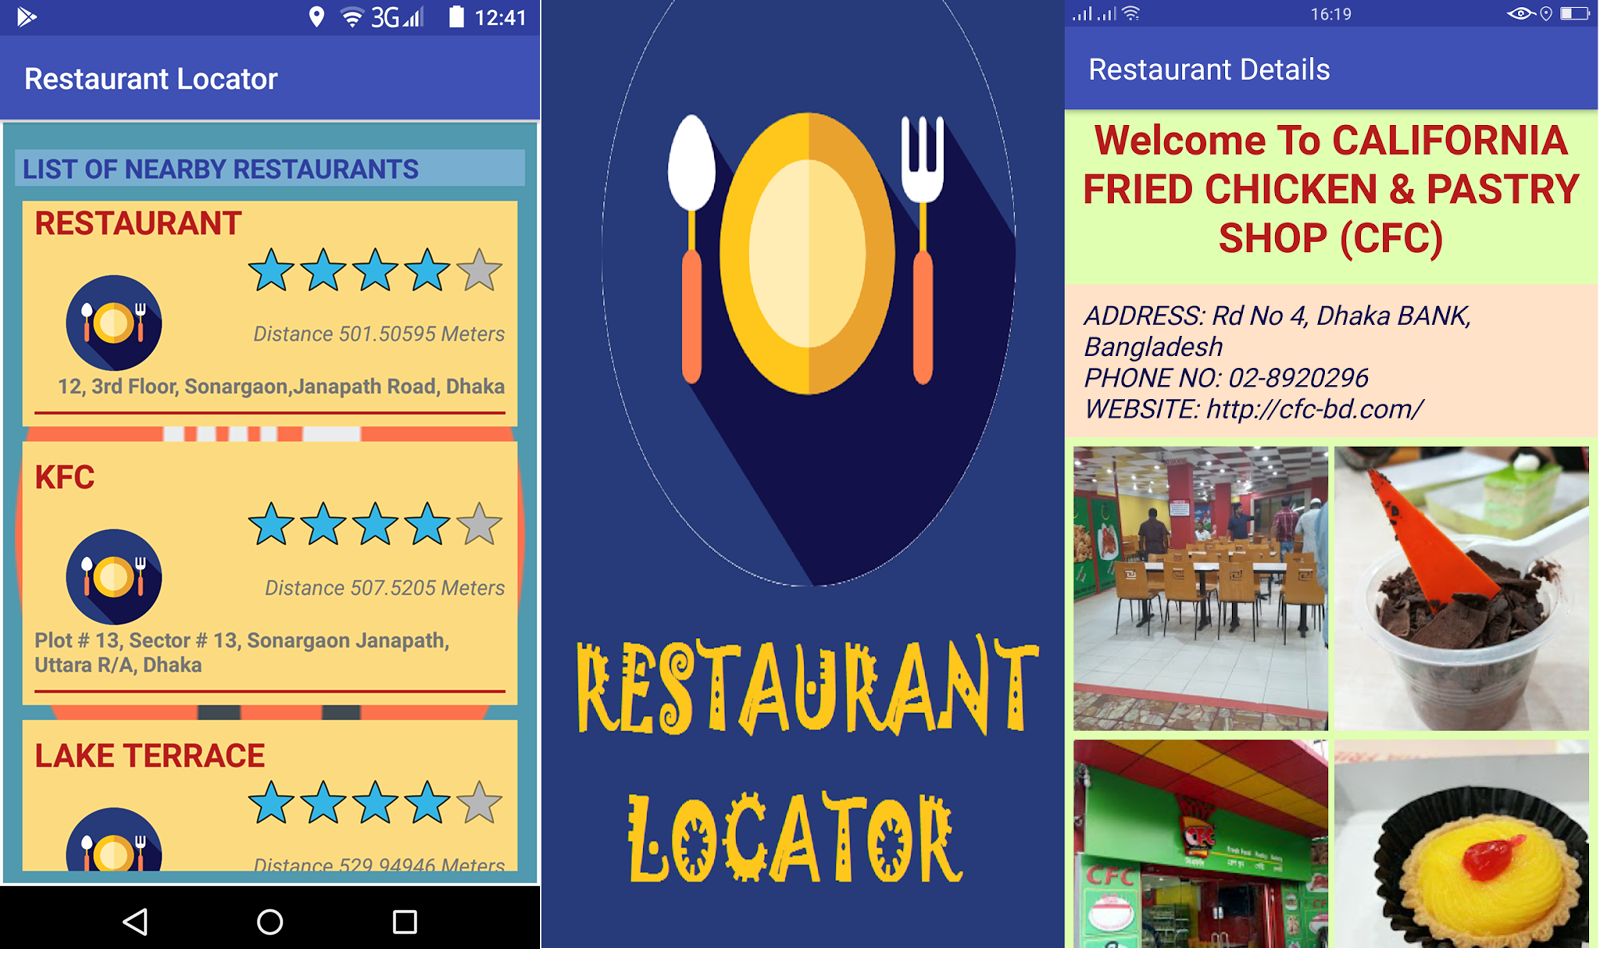 Restaurant Locator Identifies The Cur Location Of User And Find Out Nearby Restaurants Information This Lication Uses Maps Googleapis Services